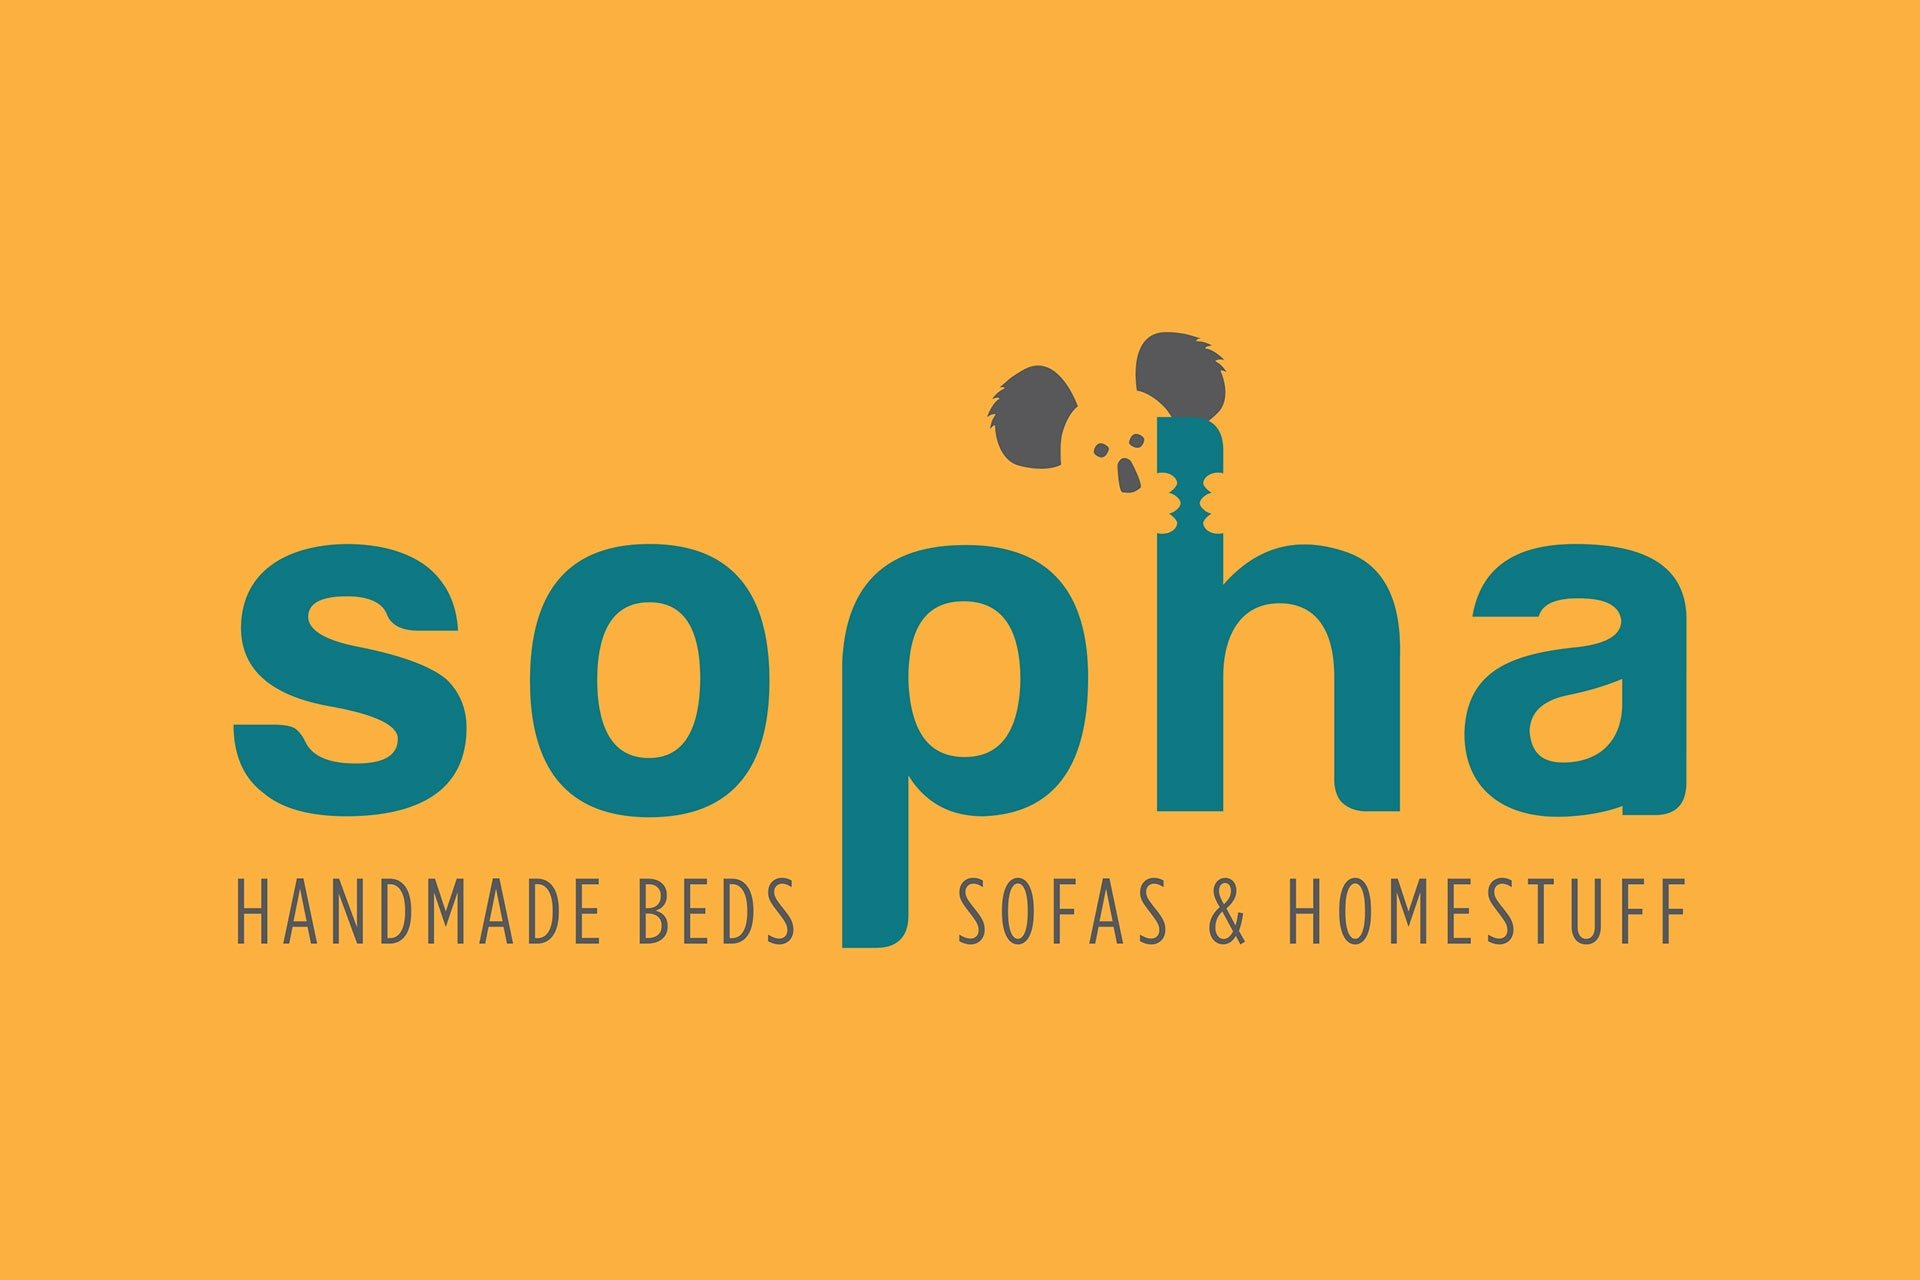 Sopha Homemade Beds, Sofas & Homestuff Logo